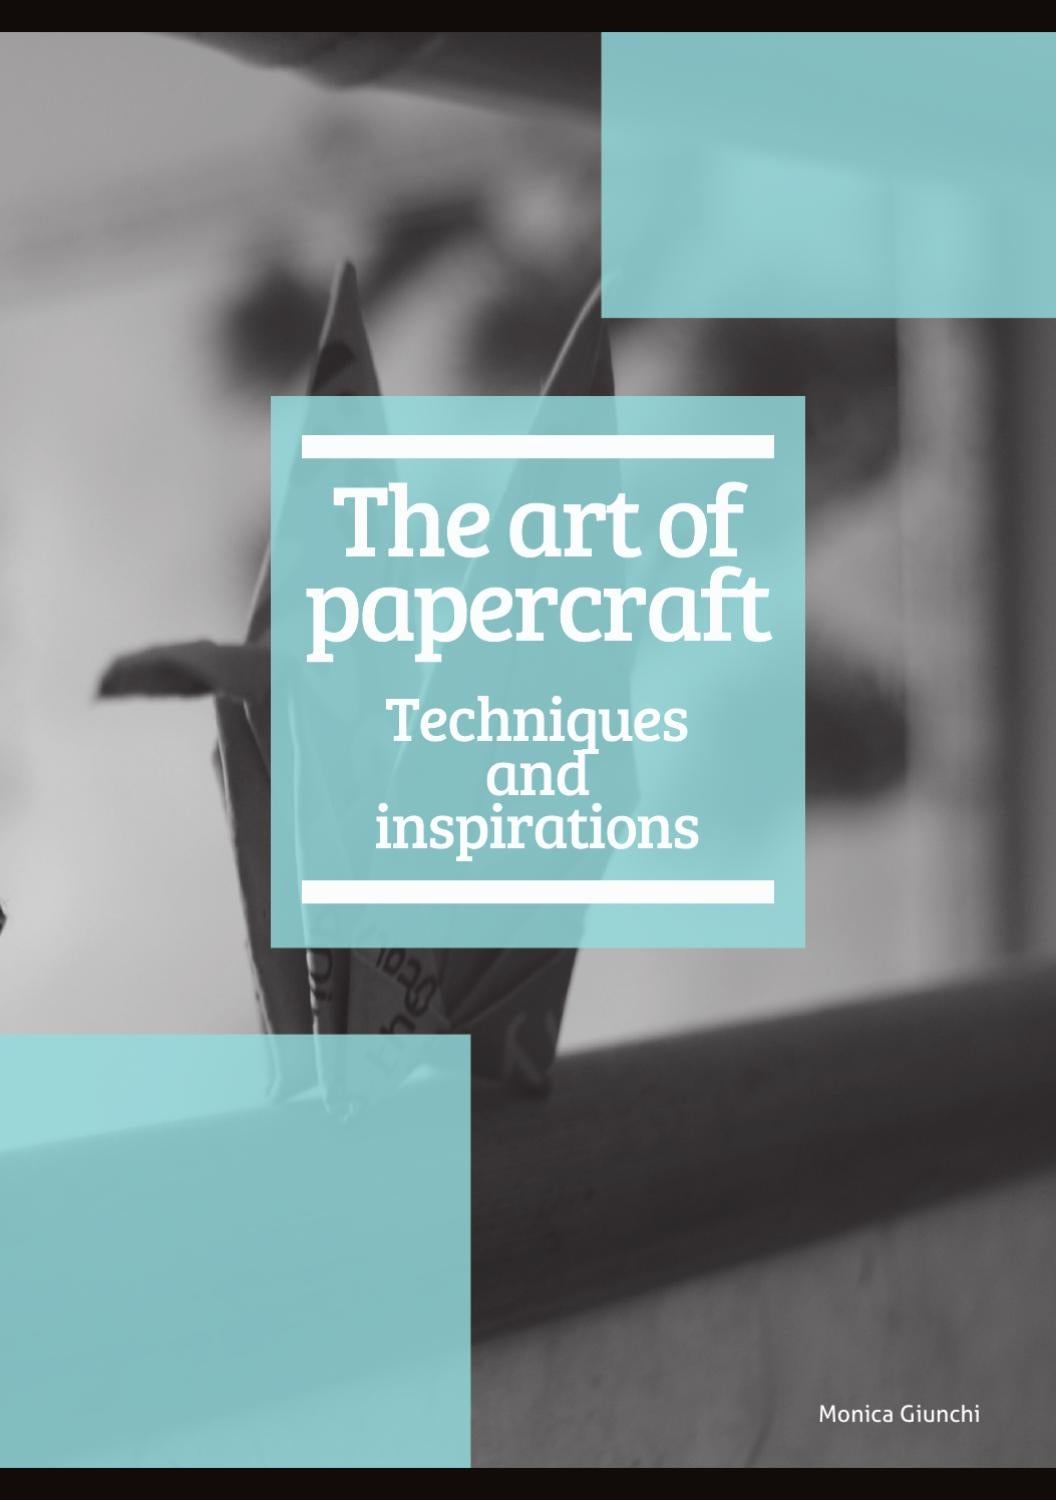 The art of papercraft by Monica Giunchi - issuu